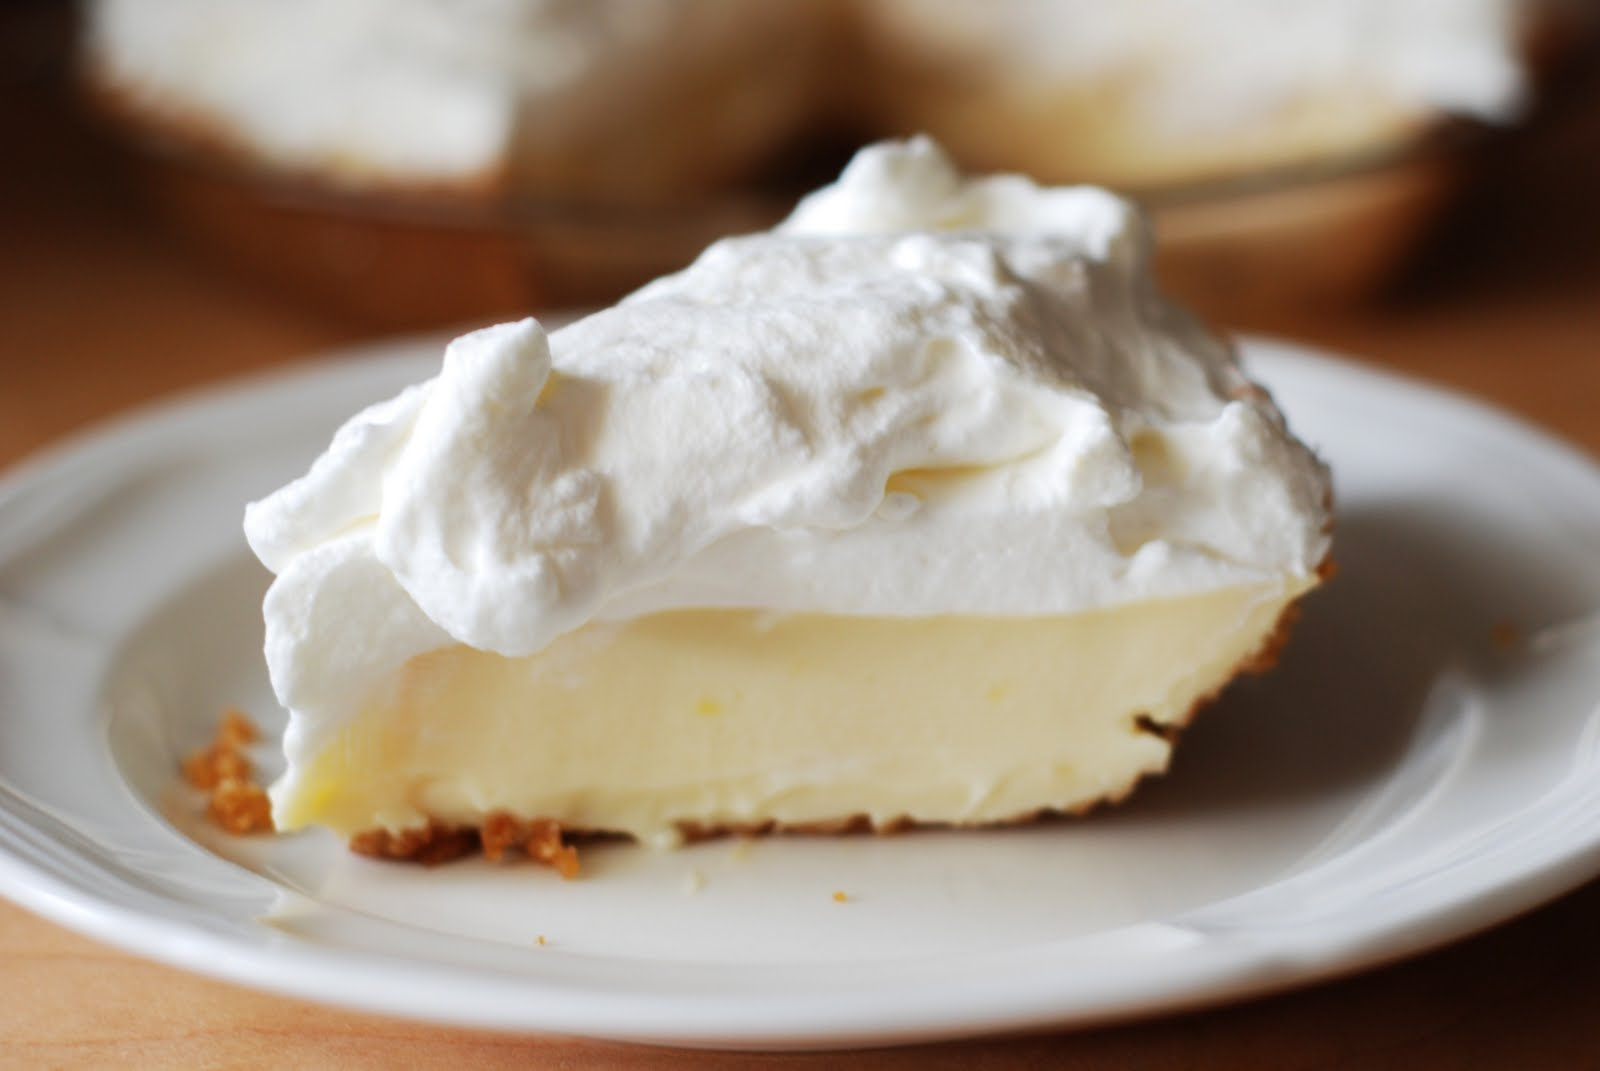 Lisa Buie-Collard - Author : Clothes Lines and Key Lime Pie Re-visited